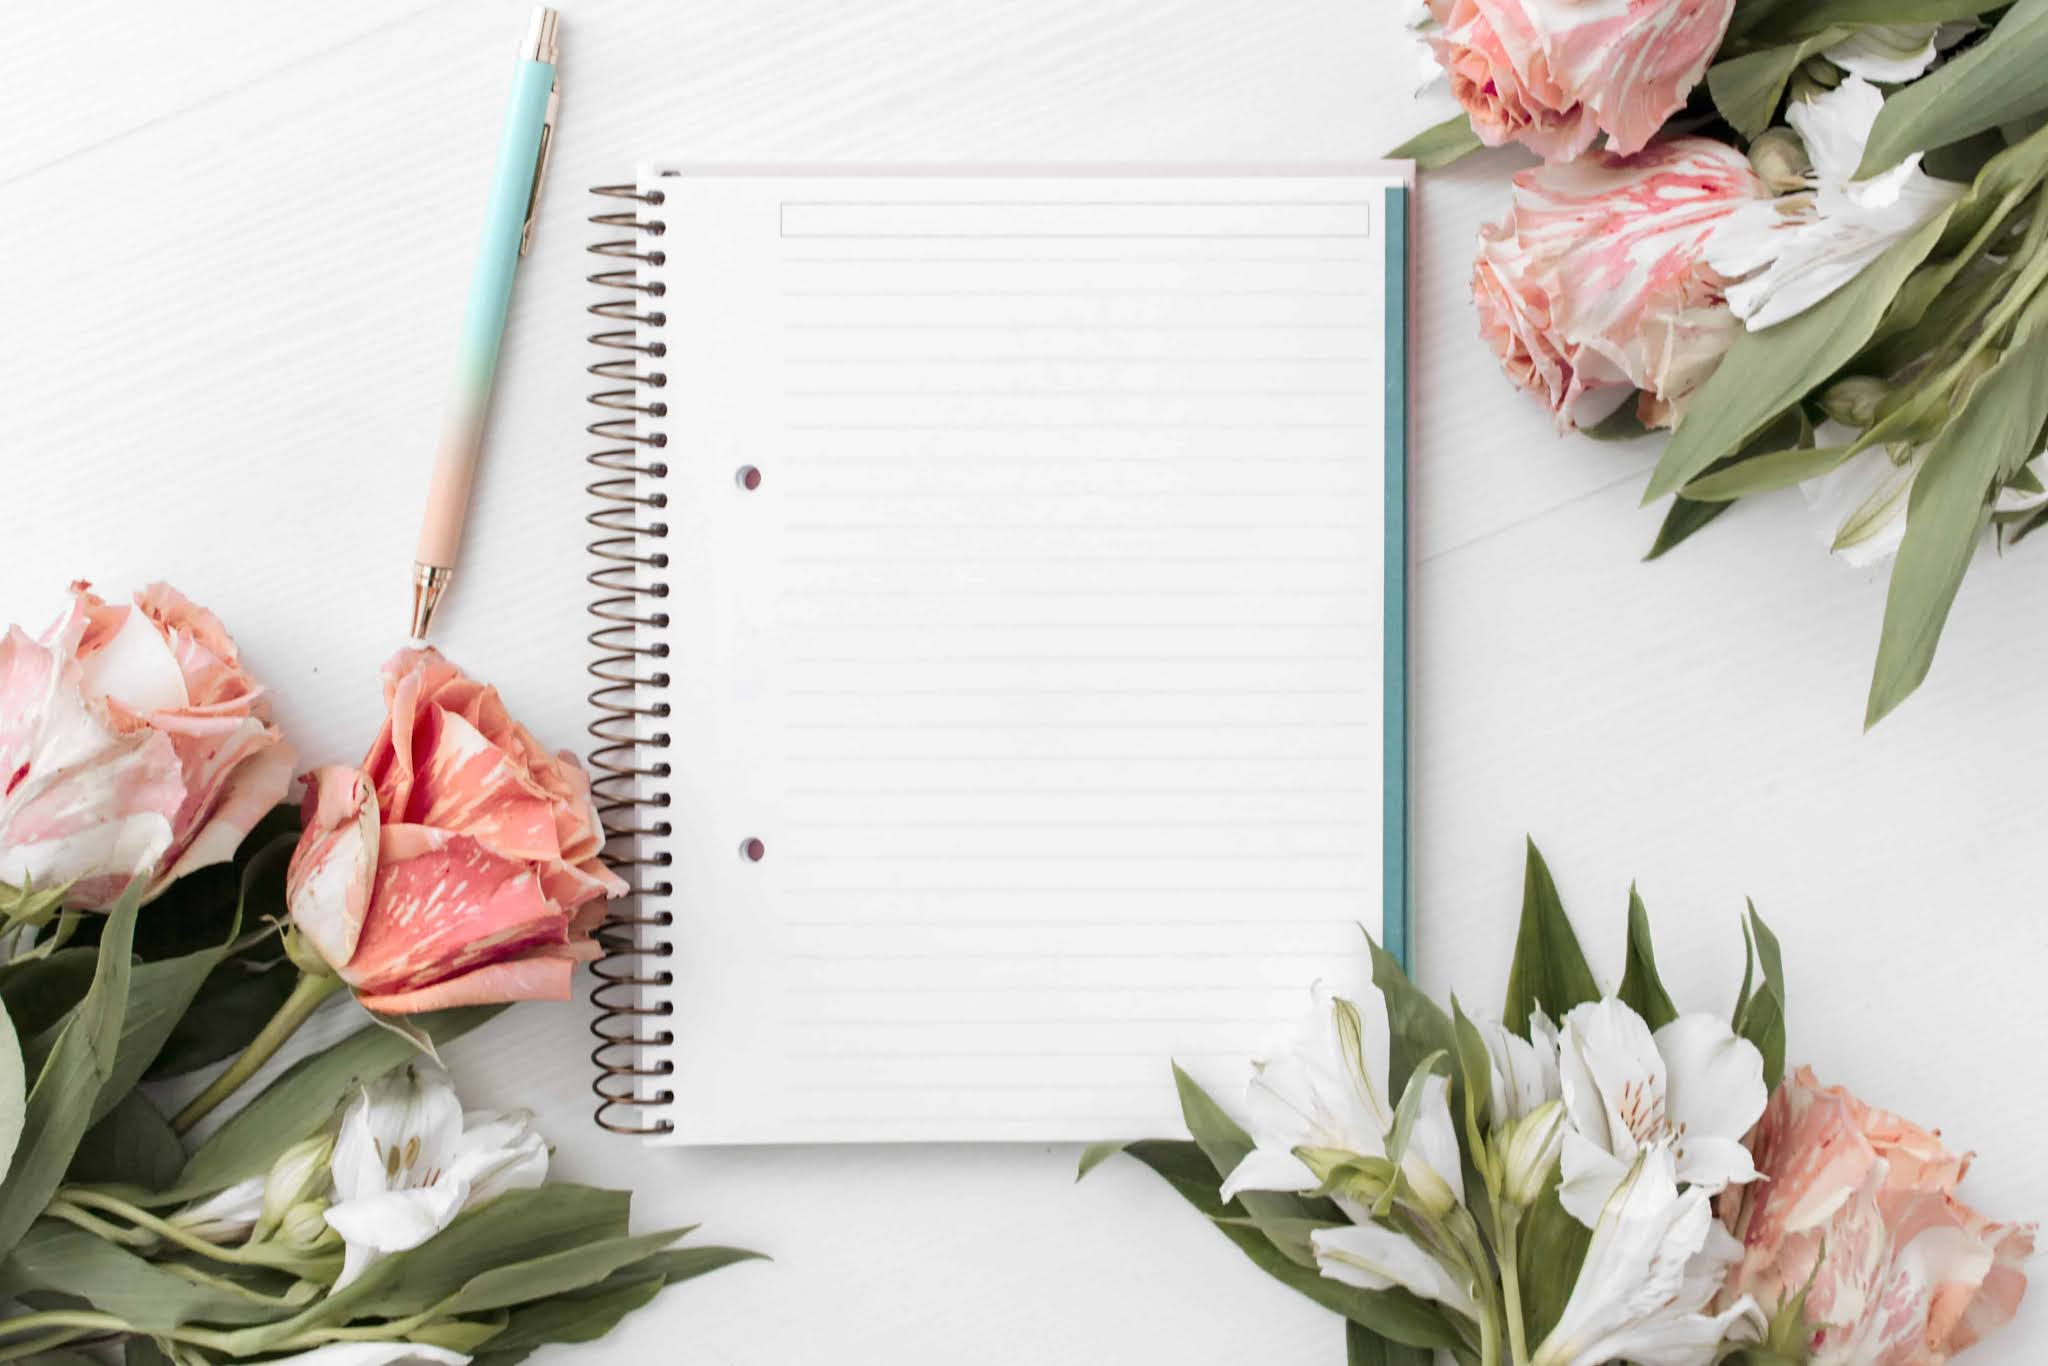 Flowers and note pad